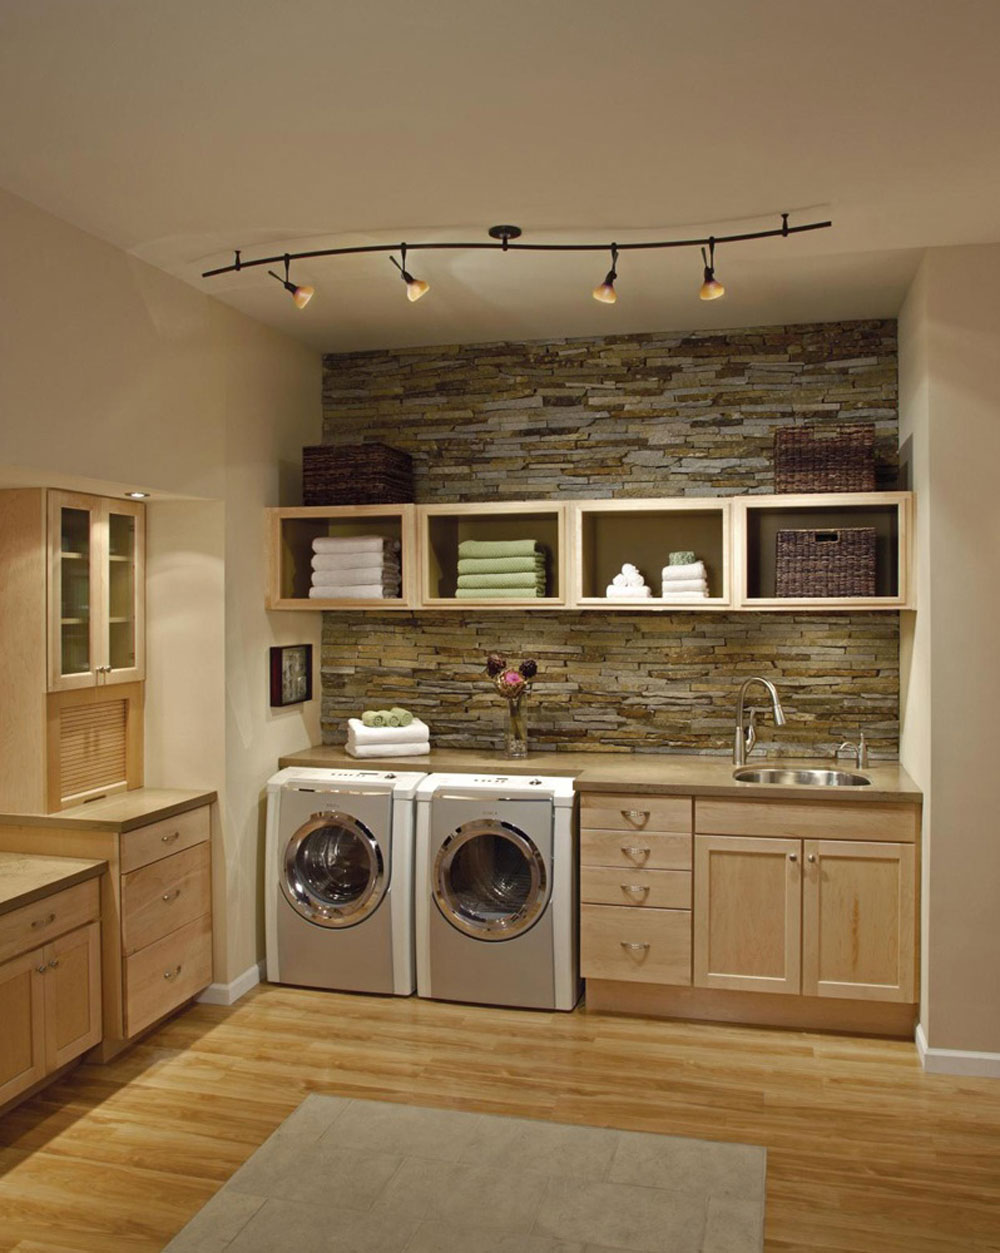 Laundry-room-ideas-for-a-clean-house-11 laundry-room-ideas-for-a-clean house